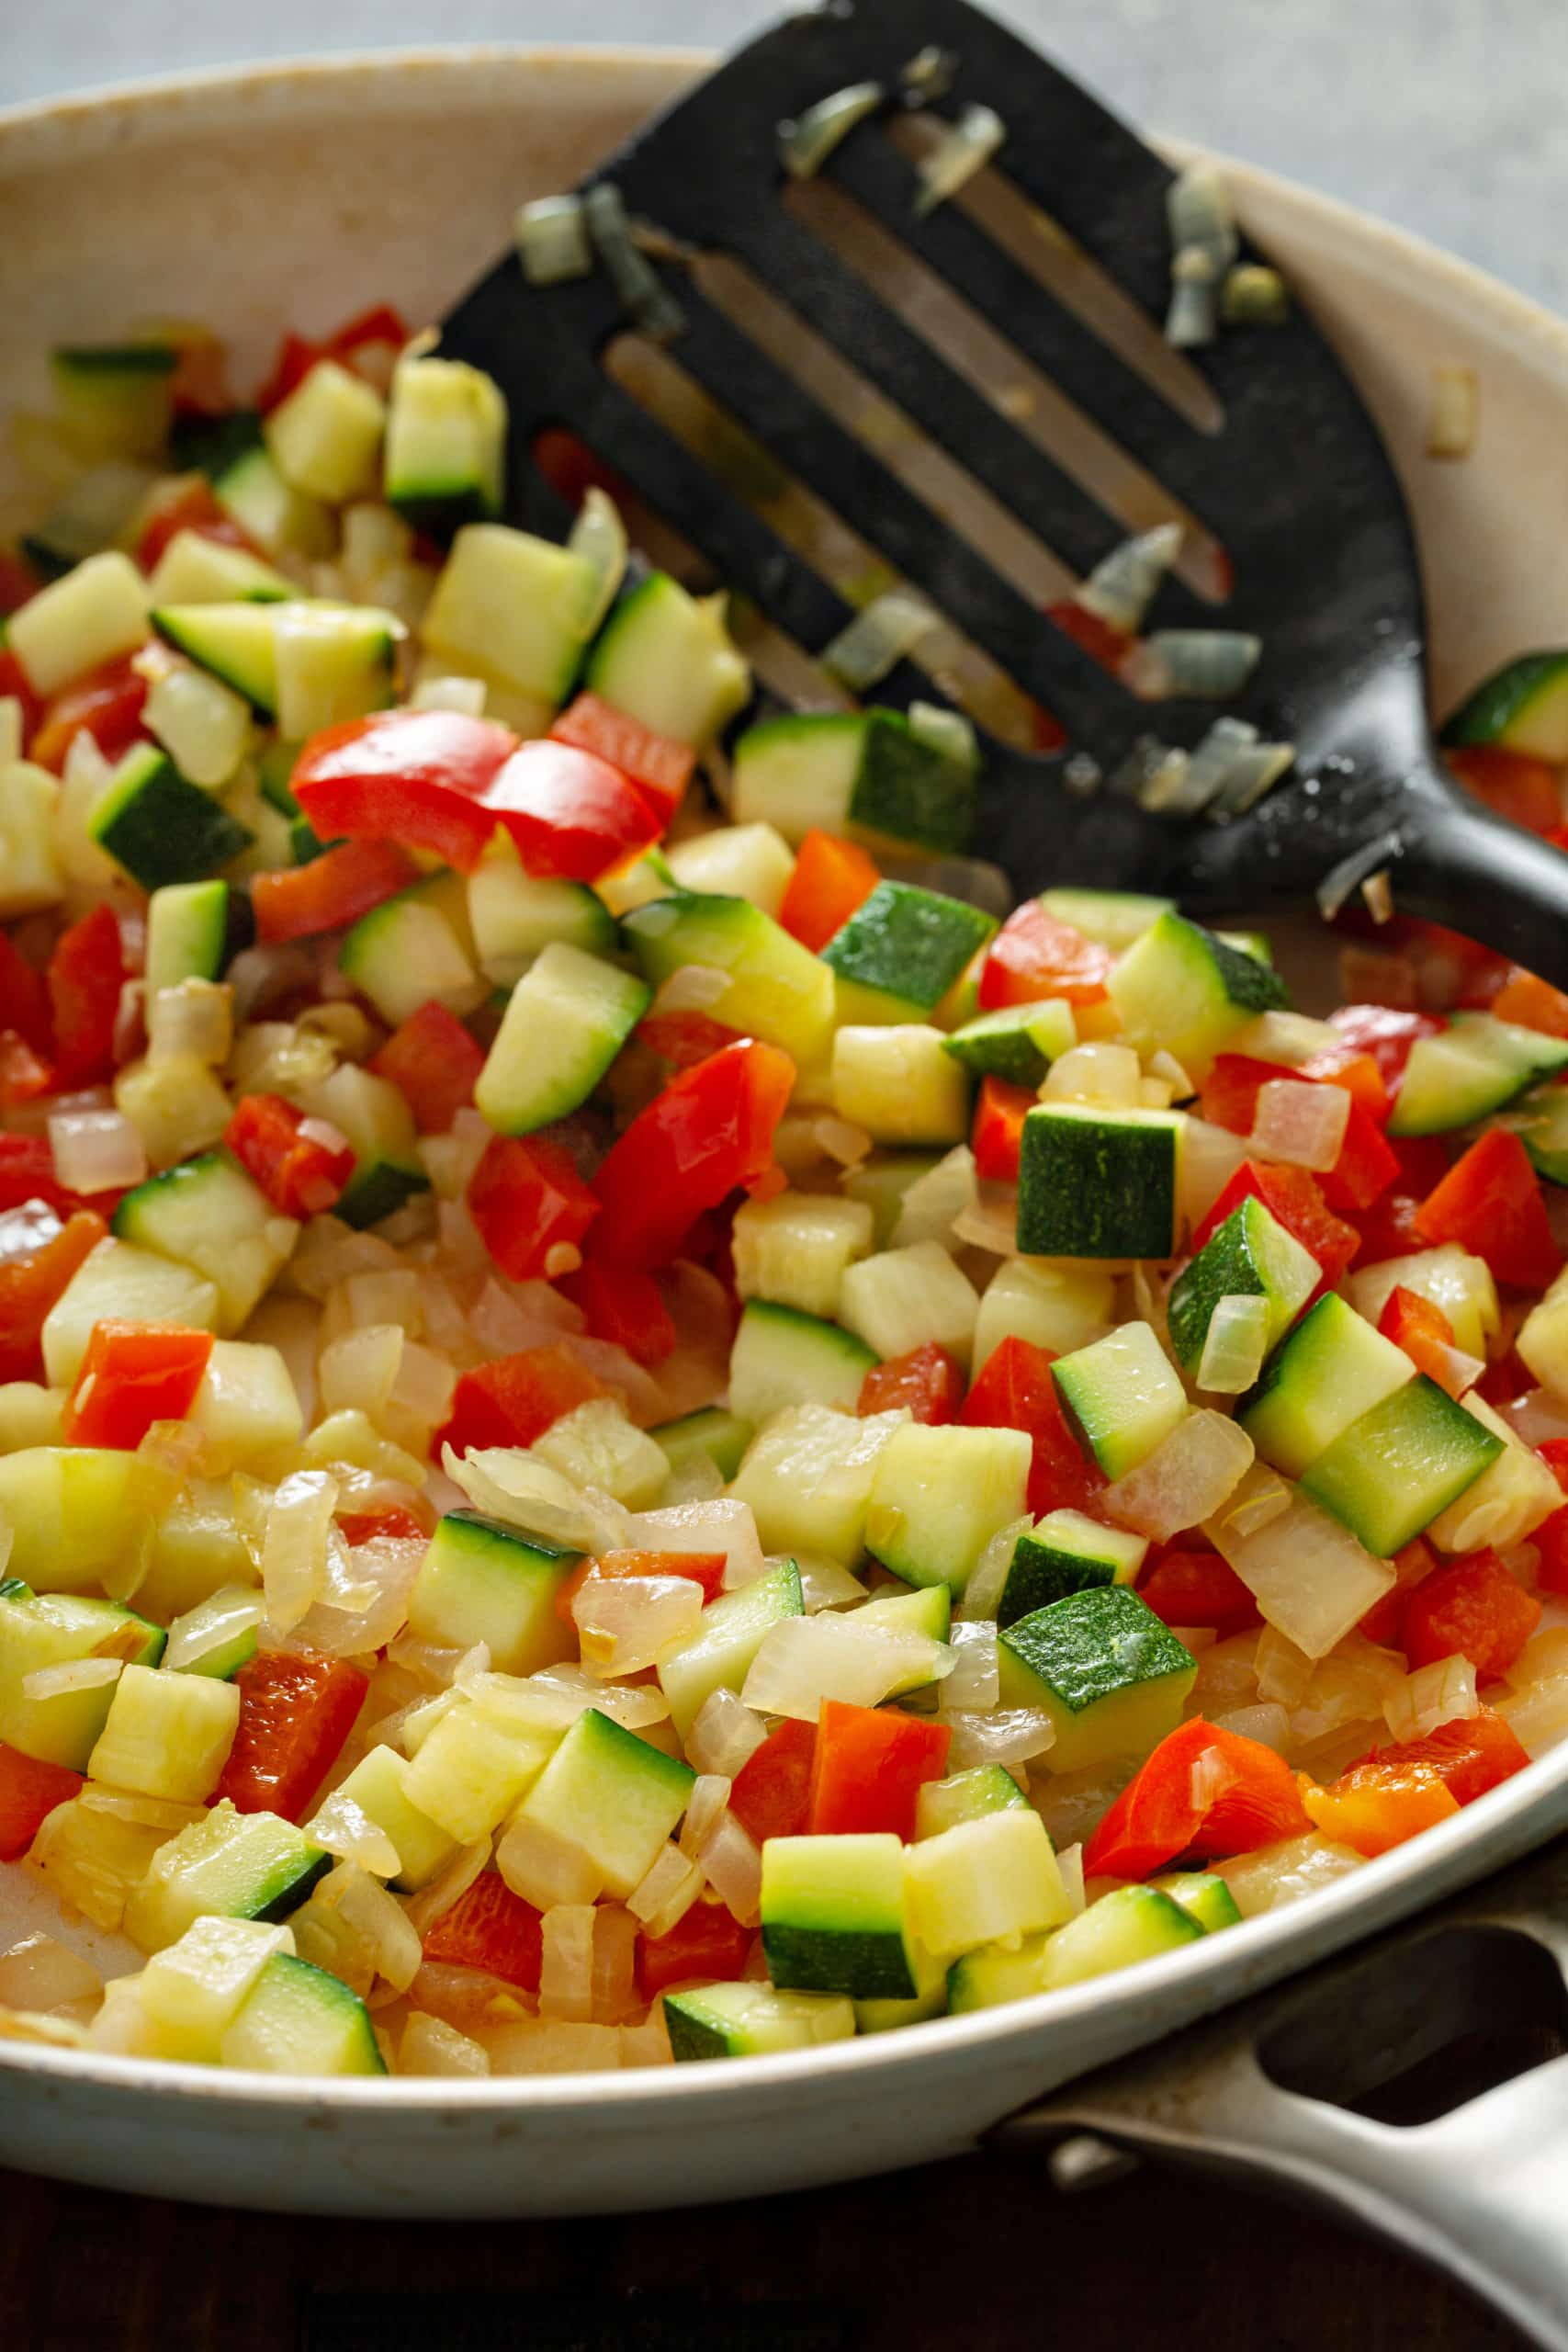 Chopped red bell pepper, zucchini, and onions.